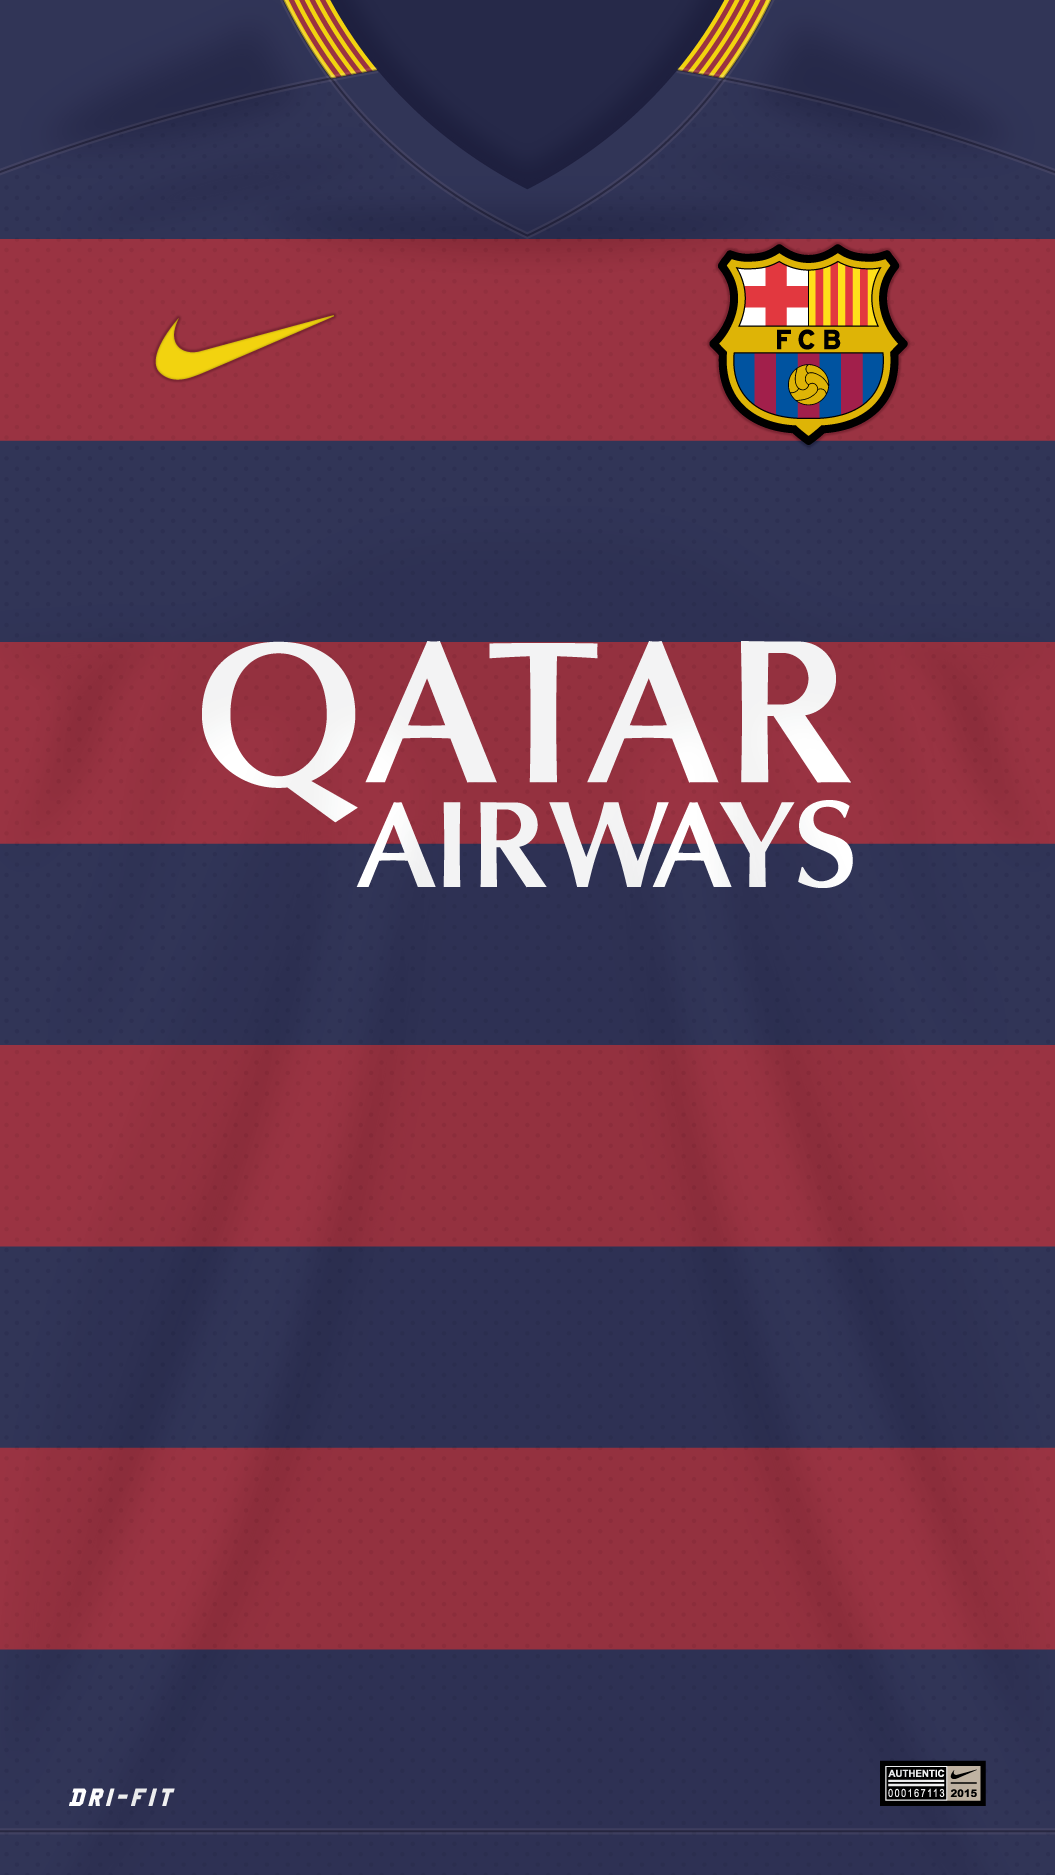 Image for Fc Barcelona Iphone Wallpaper For Android  meoat ... 5be19d5c1e6